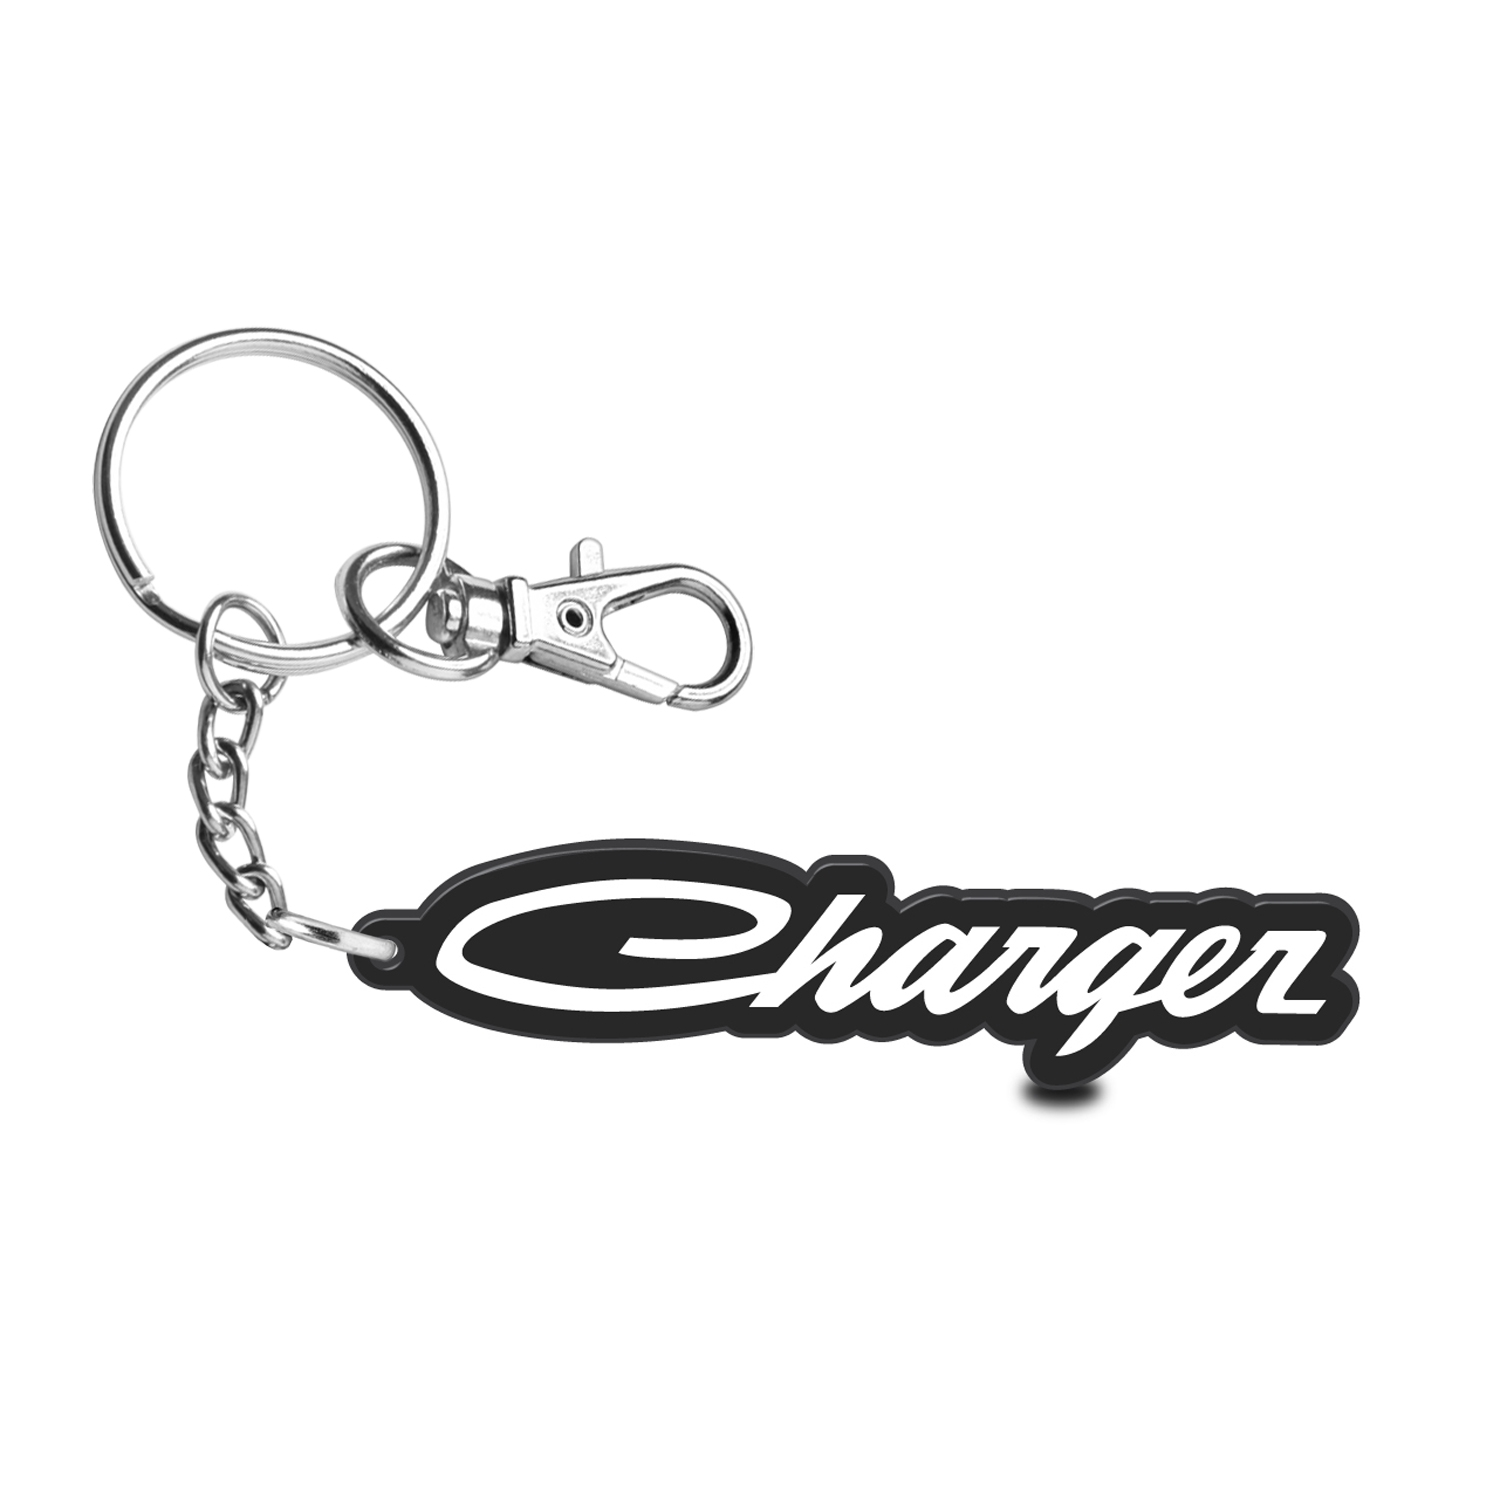 Dodge Charger Classic Custom Laser Cut with UV Full-Color Printing Acrylic Charm Key Chain